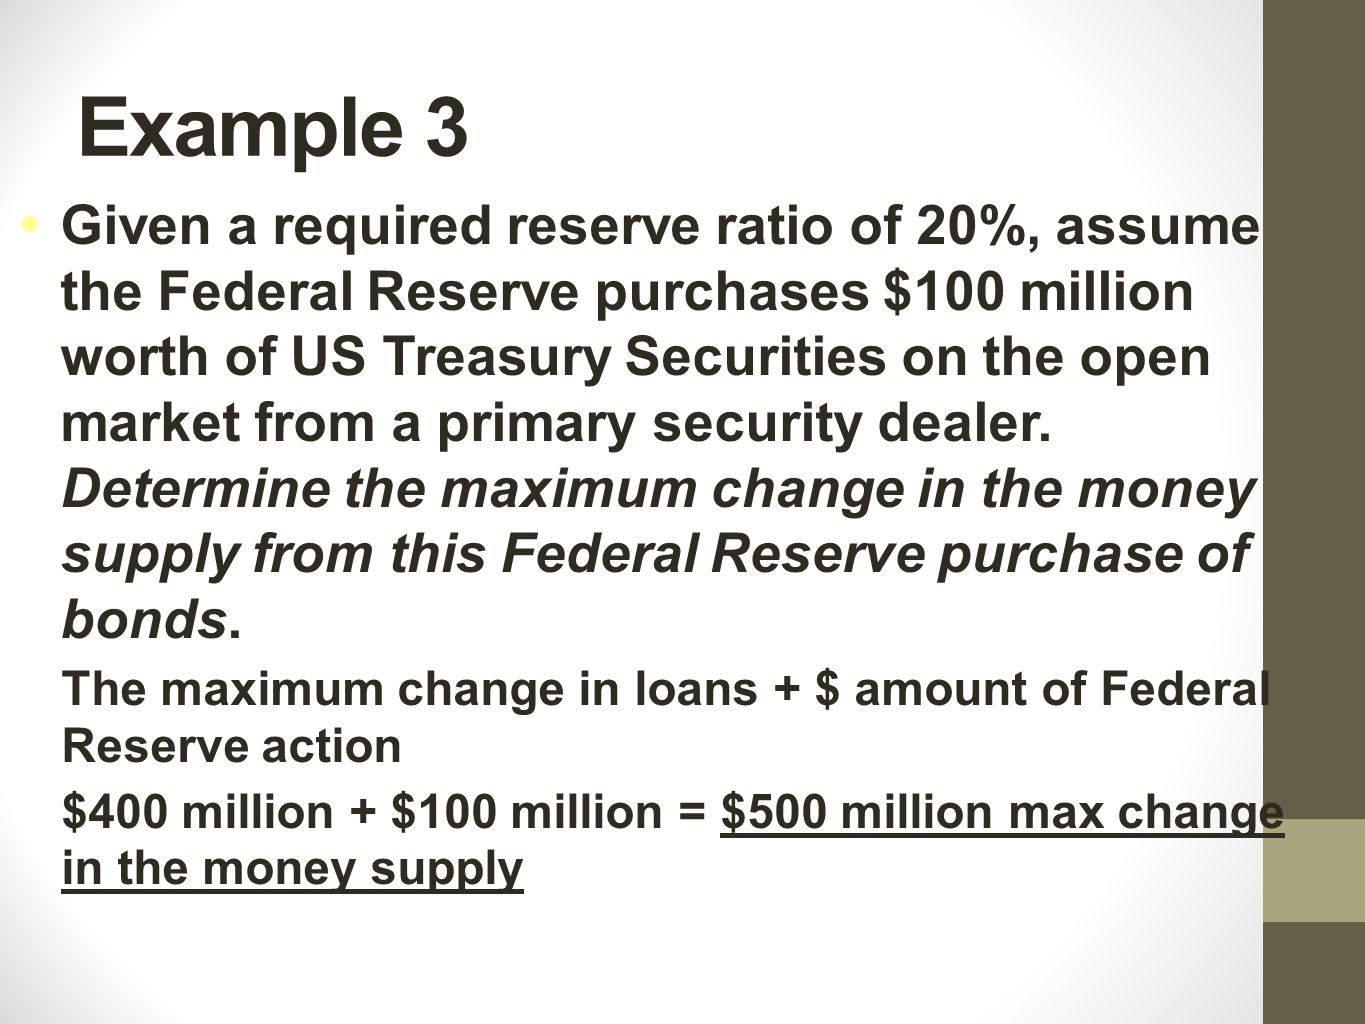 Example 4 Given a required reserve ratio of 20%, assume the Federal Reserve purchases $100 million worth of US Treasury Securities on the open market from a primary security dealer.